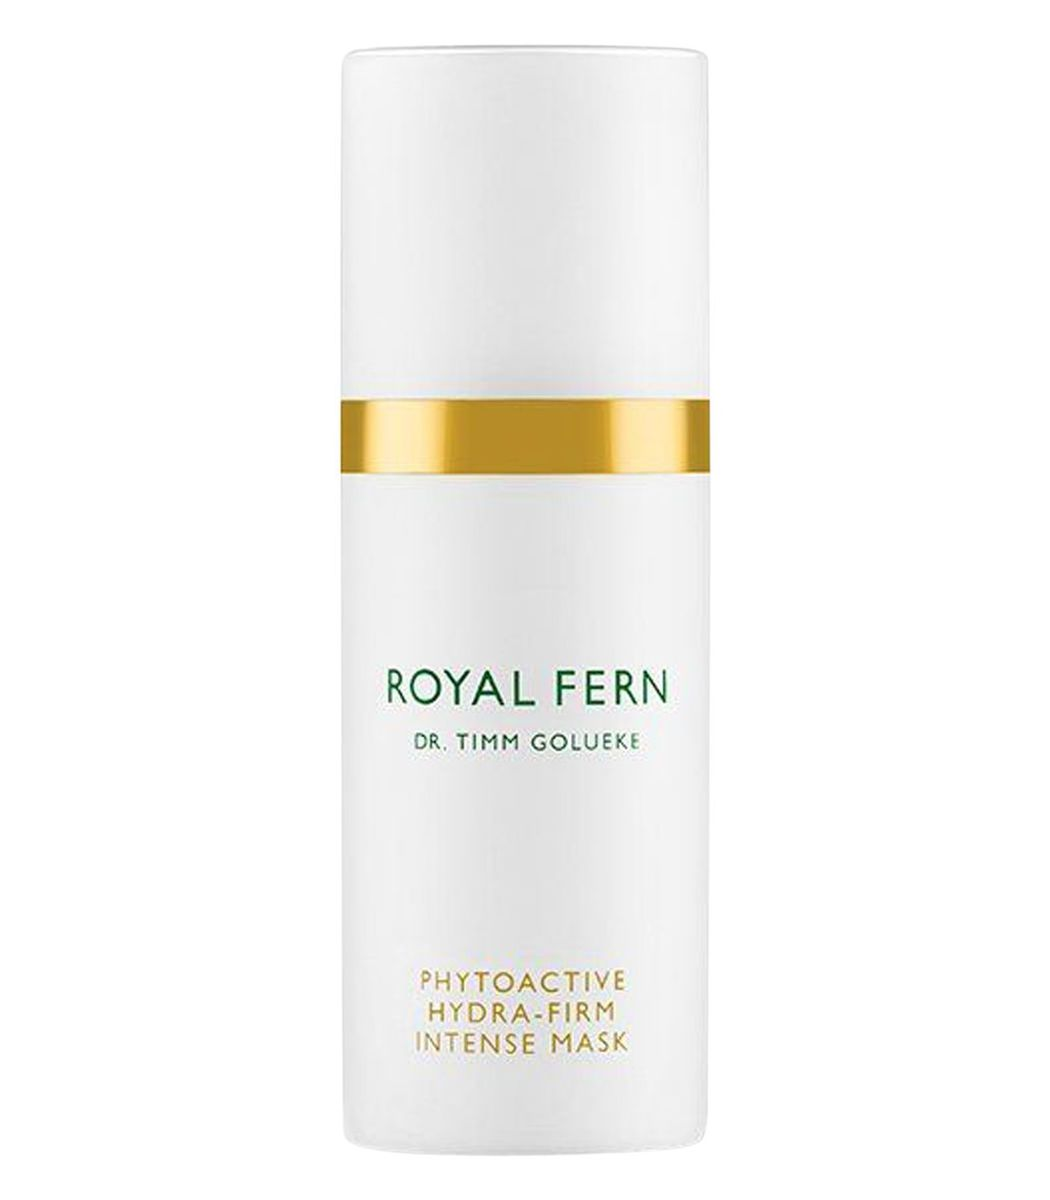 Royal Fern Hydra Firm Intense Mask, 30ml In White